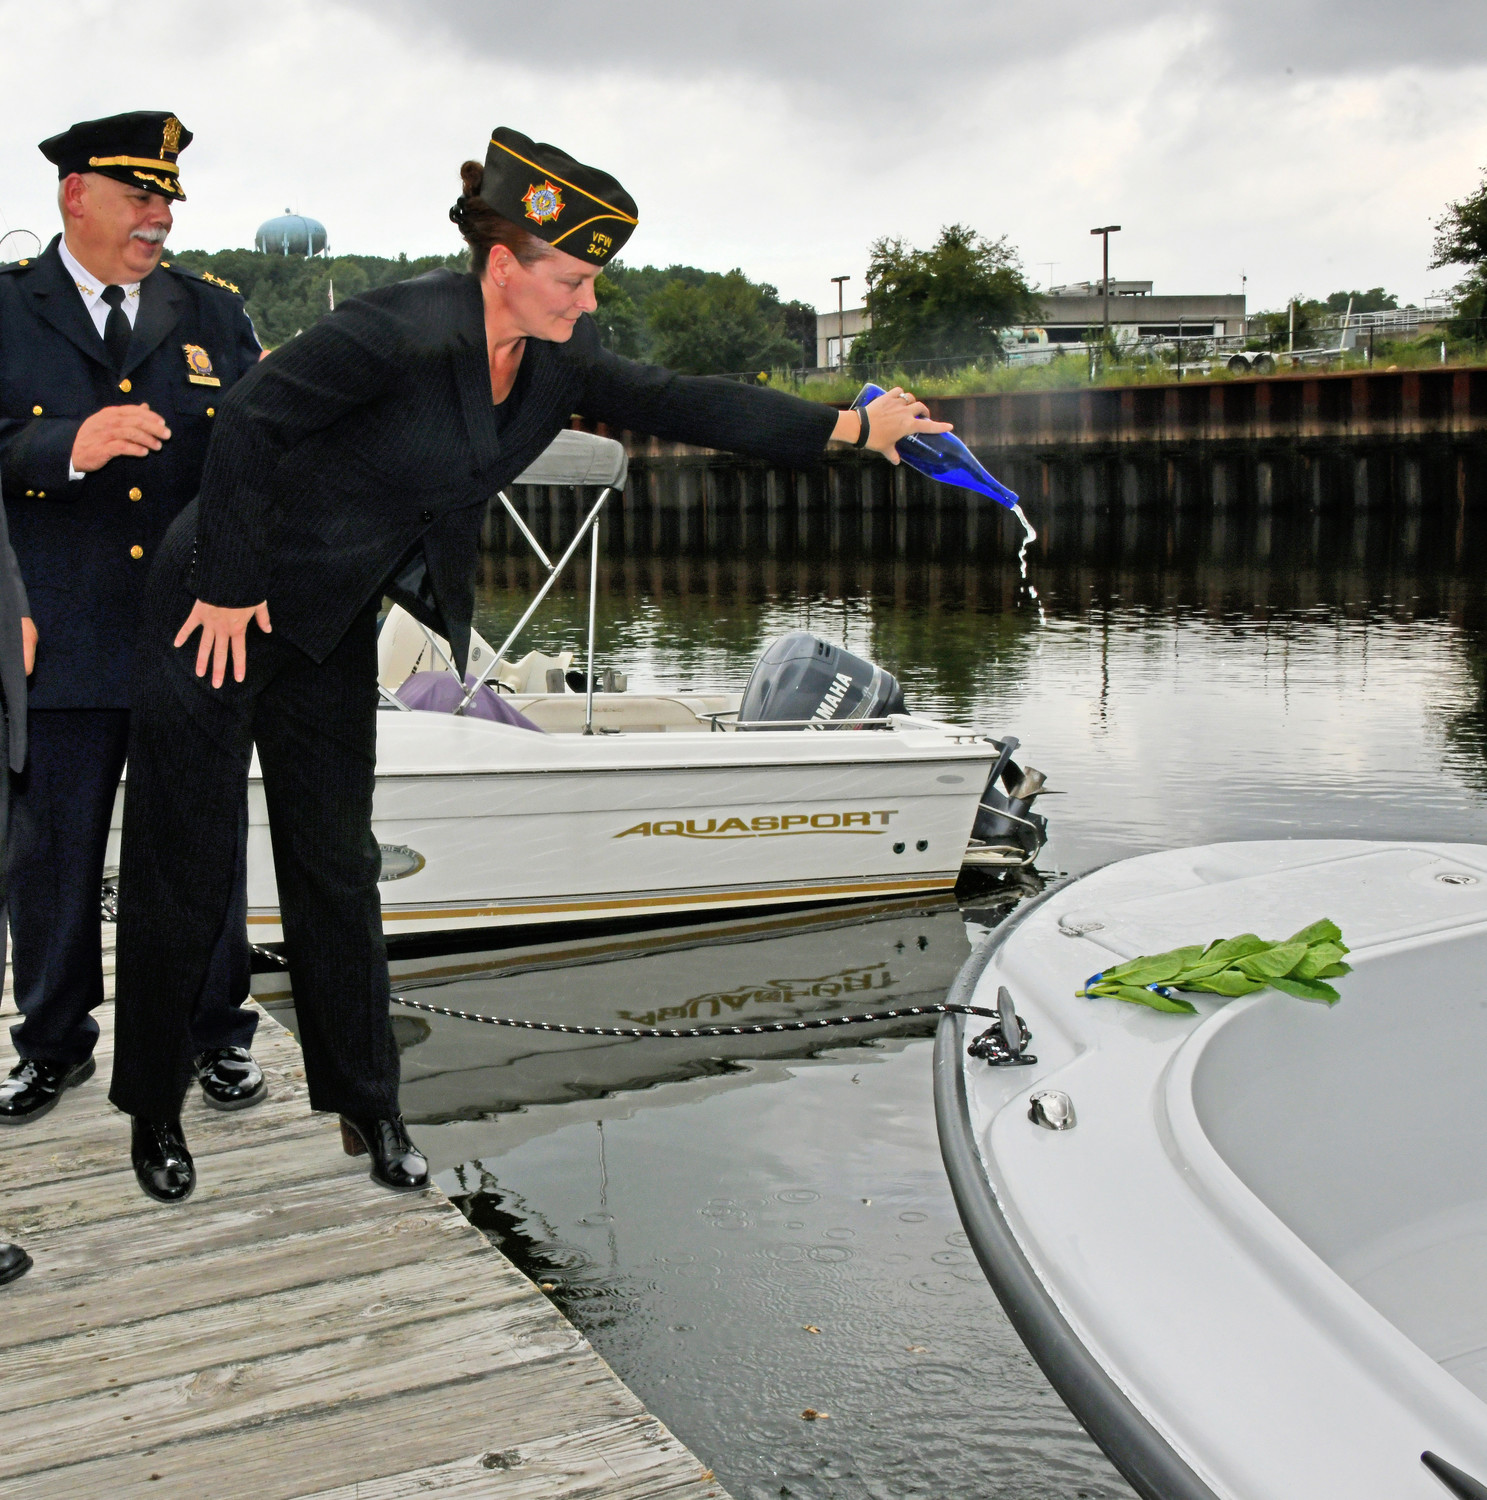 Christina Noon, christened the new Harbor Patrol vessel, named in honor of her father, World War II veteran and POW Private First Class Louis J. Noon.